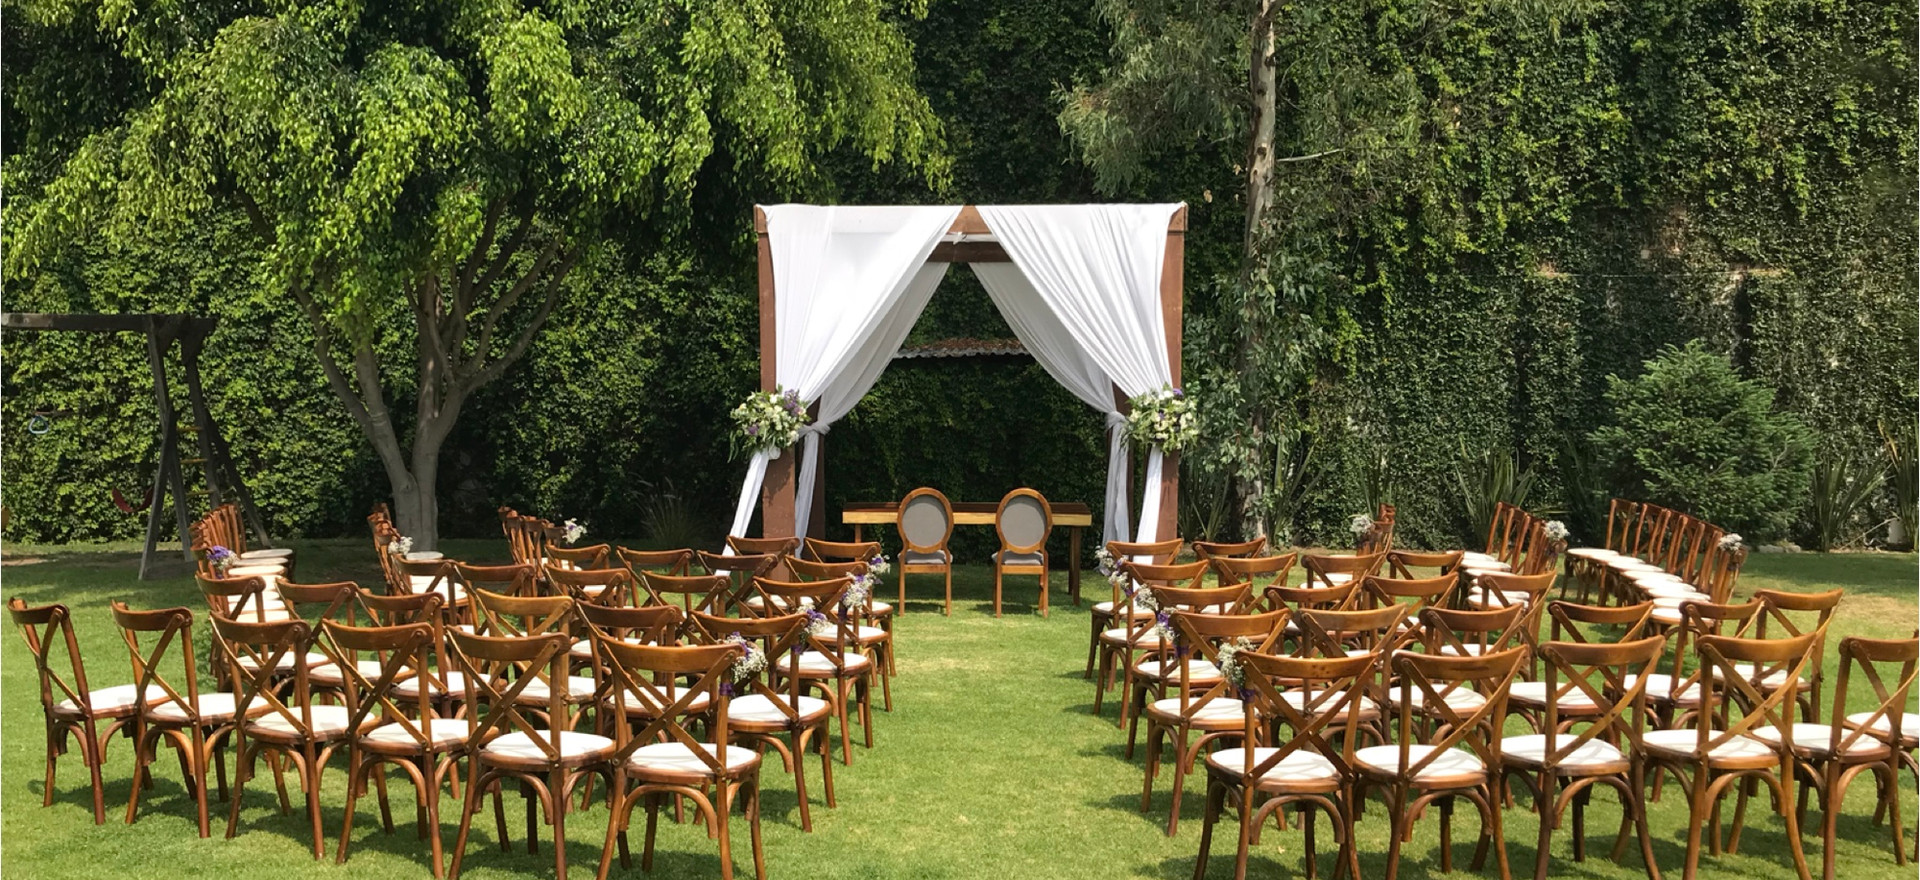 Montaje Boda Civil en Jardín Escondido